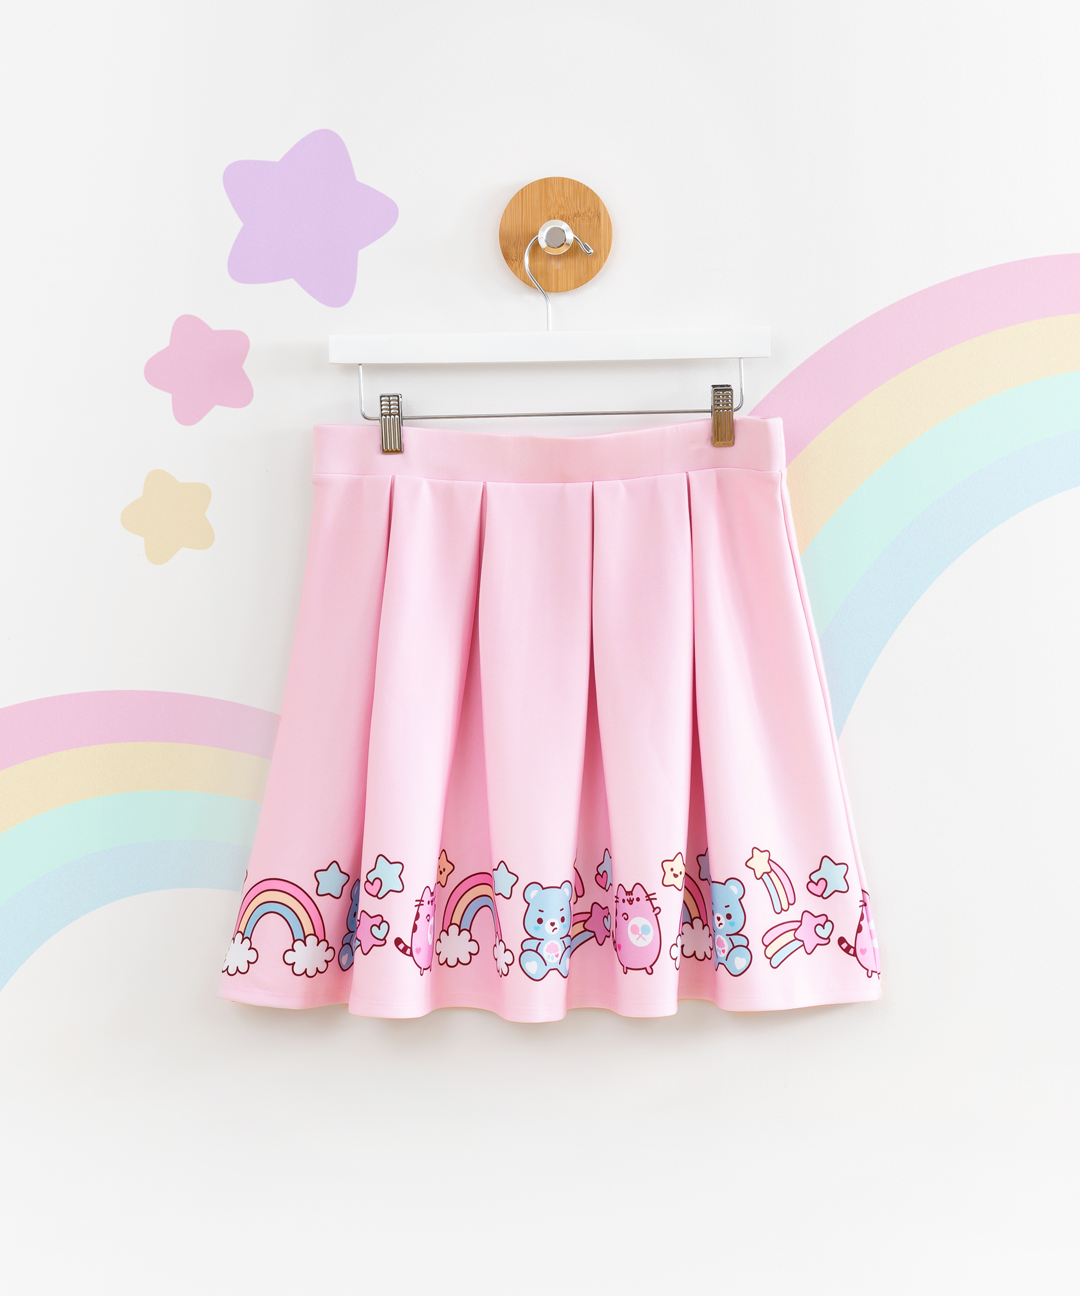 Care Bears x Pusheen Collaboration Achieves Peak Cuteness_4